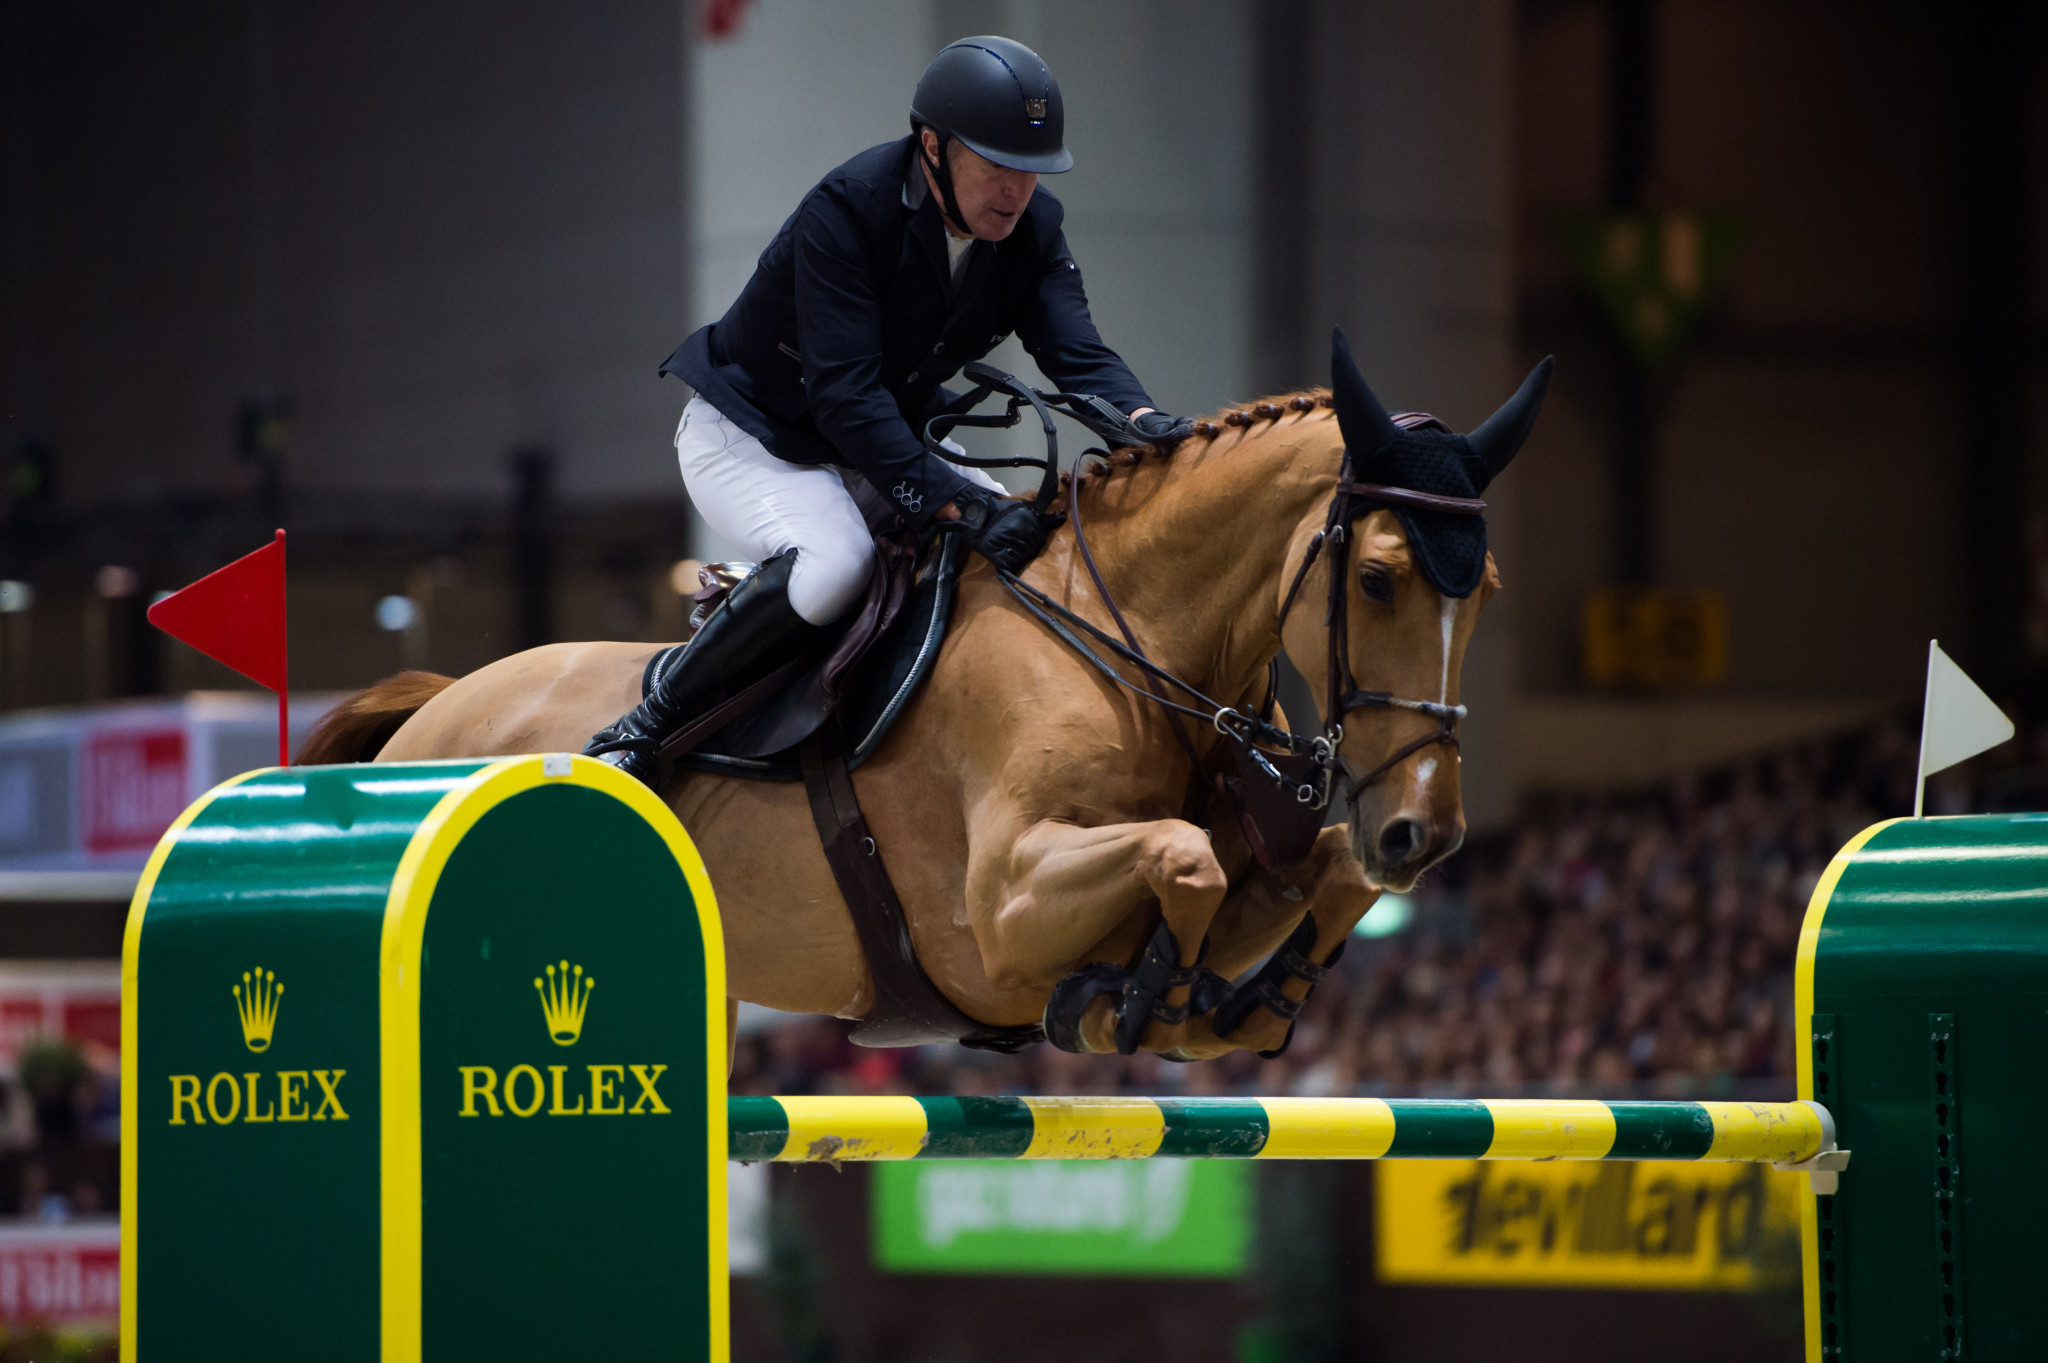 Bost triumphs in high quality FEI World Cup Western League Jumping event in Madrid